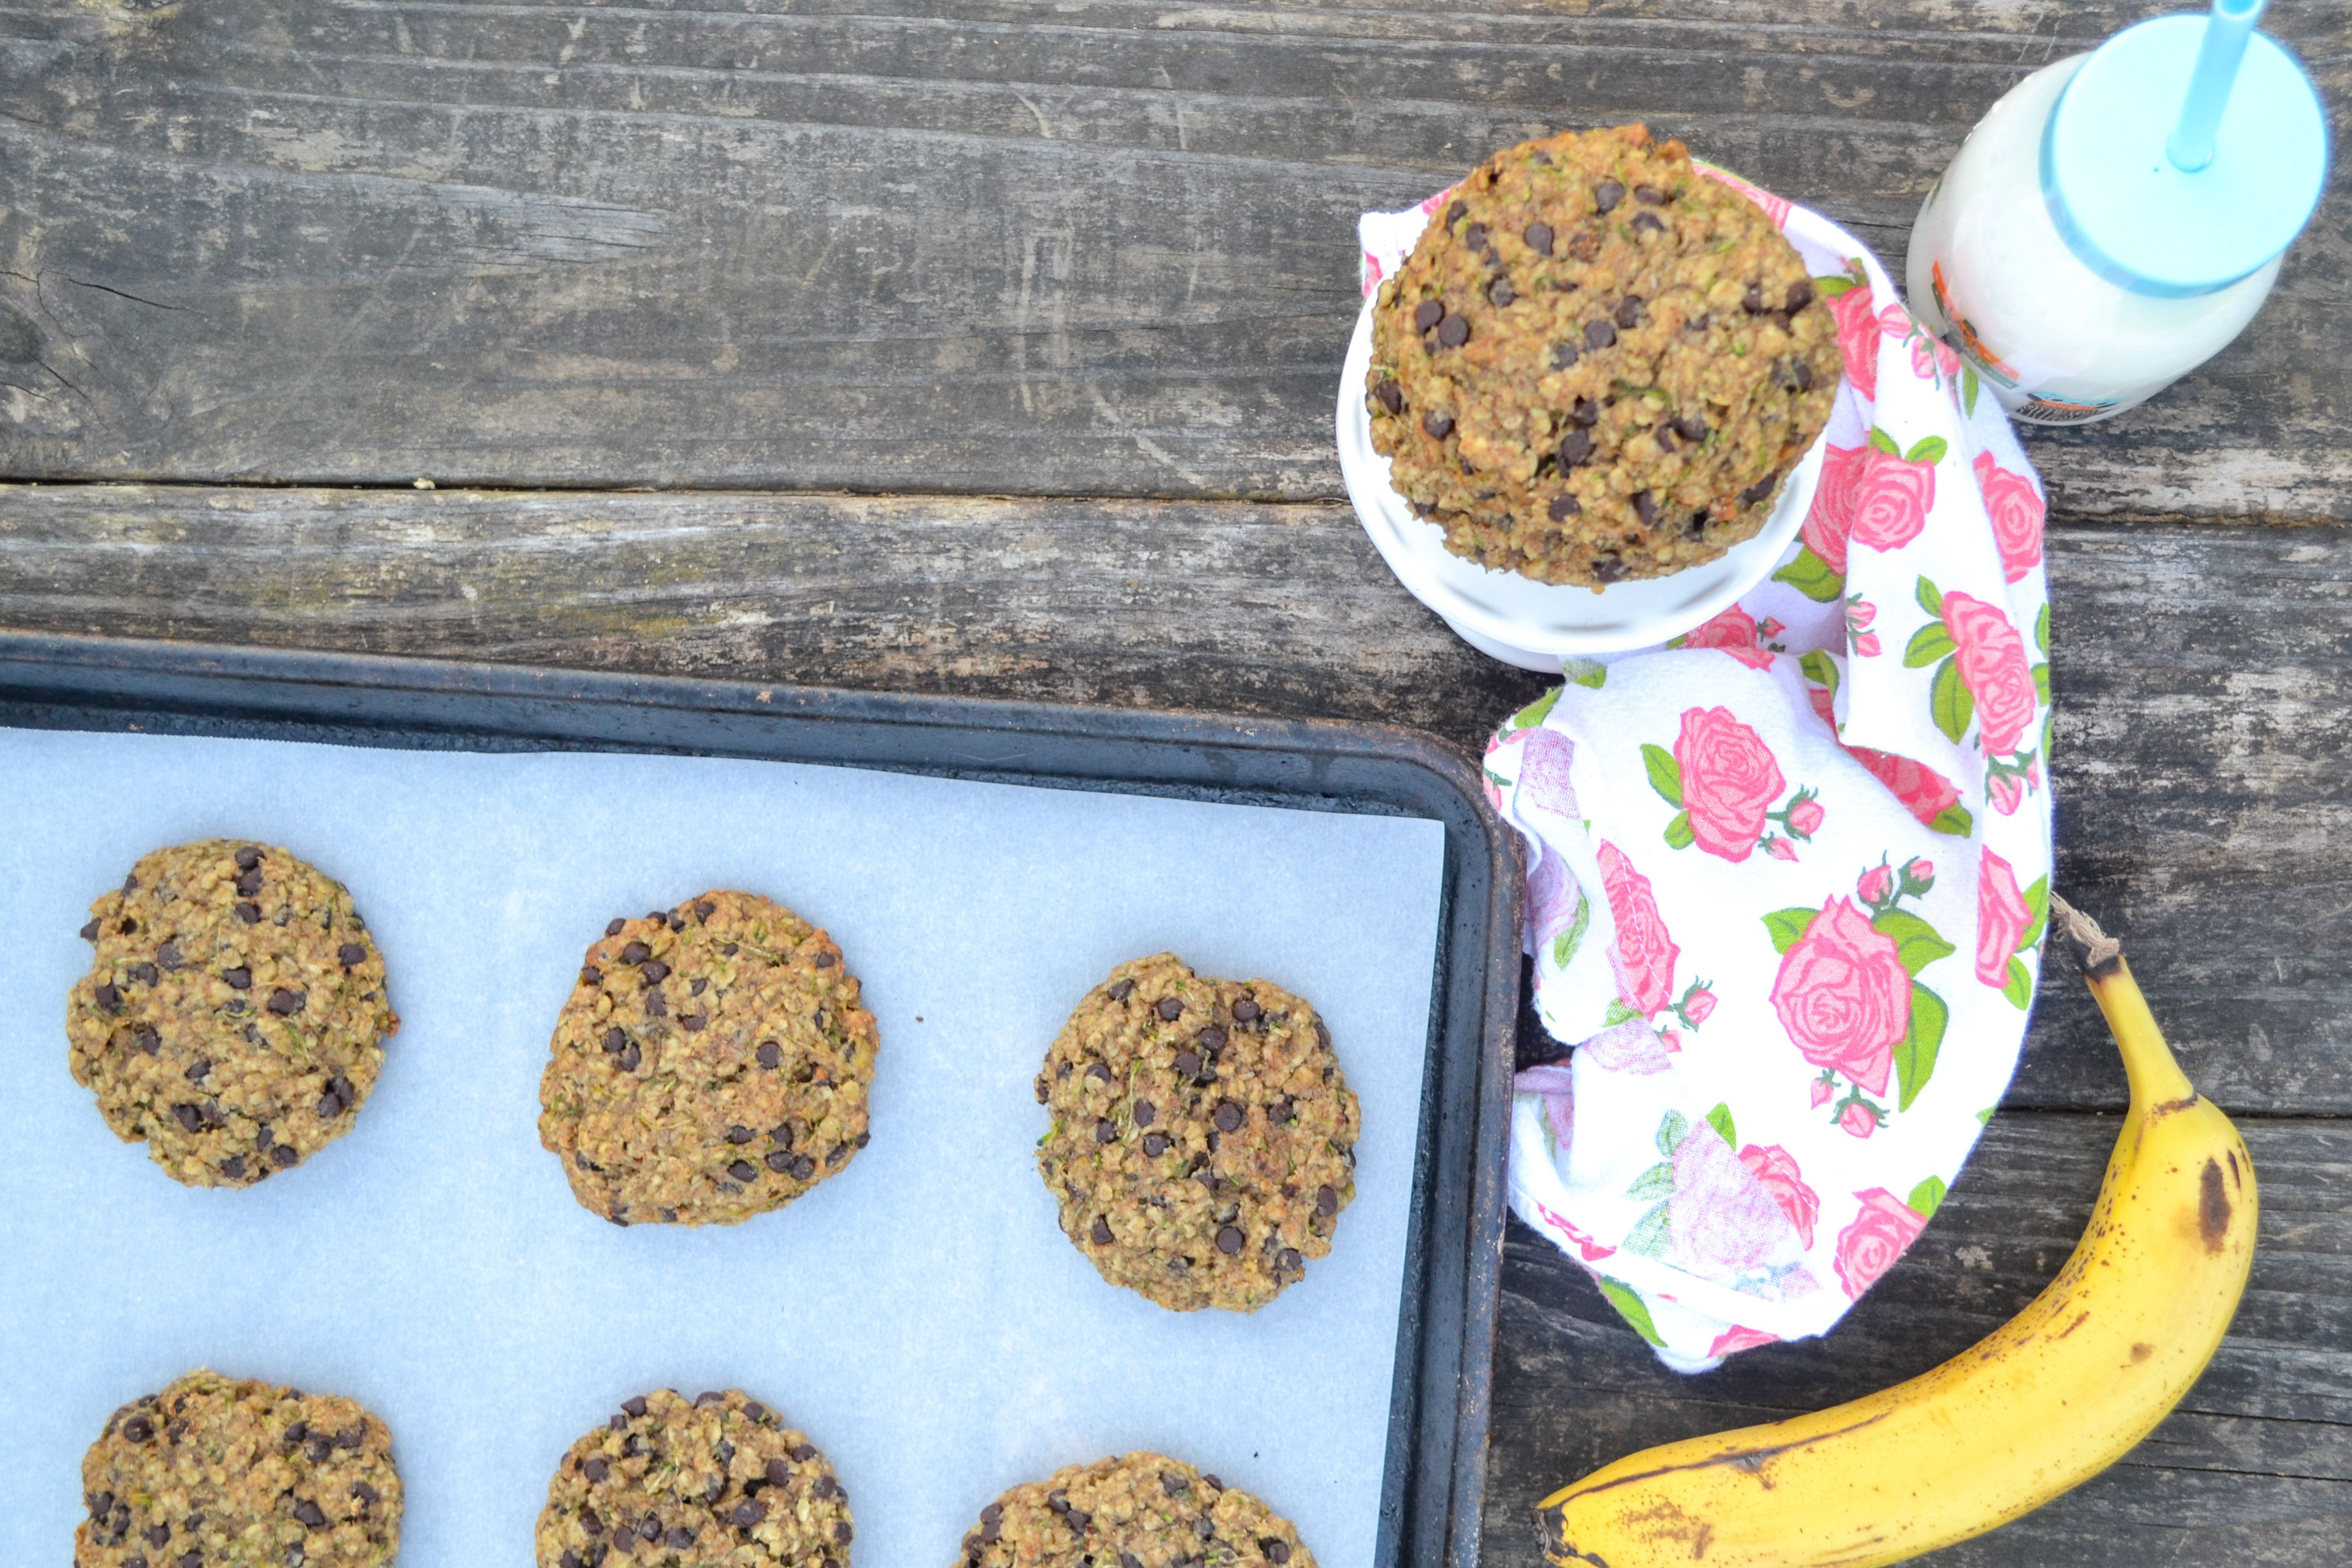 a cookie sheet with veggie cookies laid on it, with a rose towel, cup of milk, and a yellow banana all laying on a wooden table.